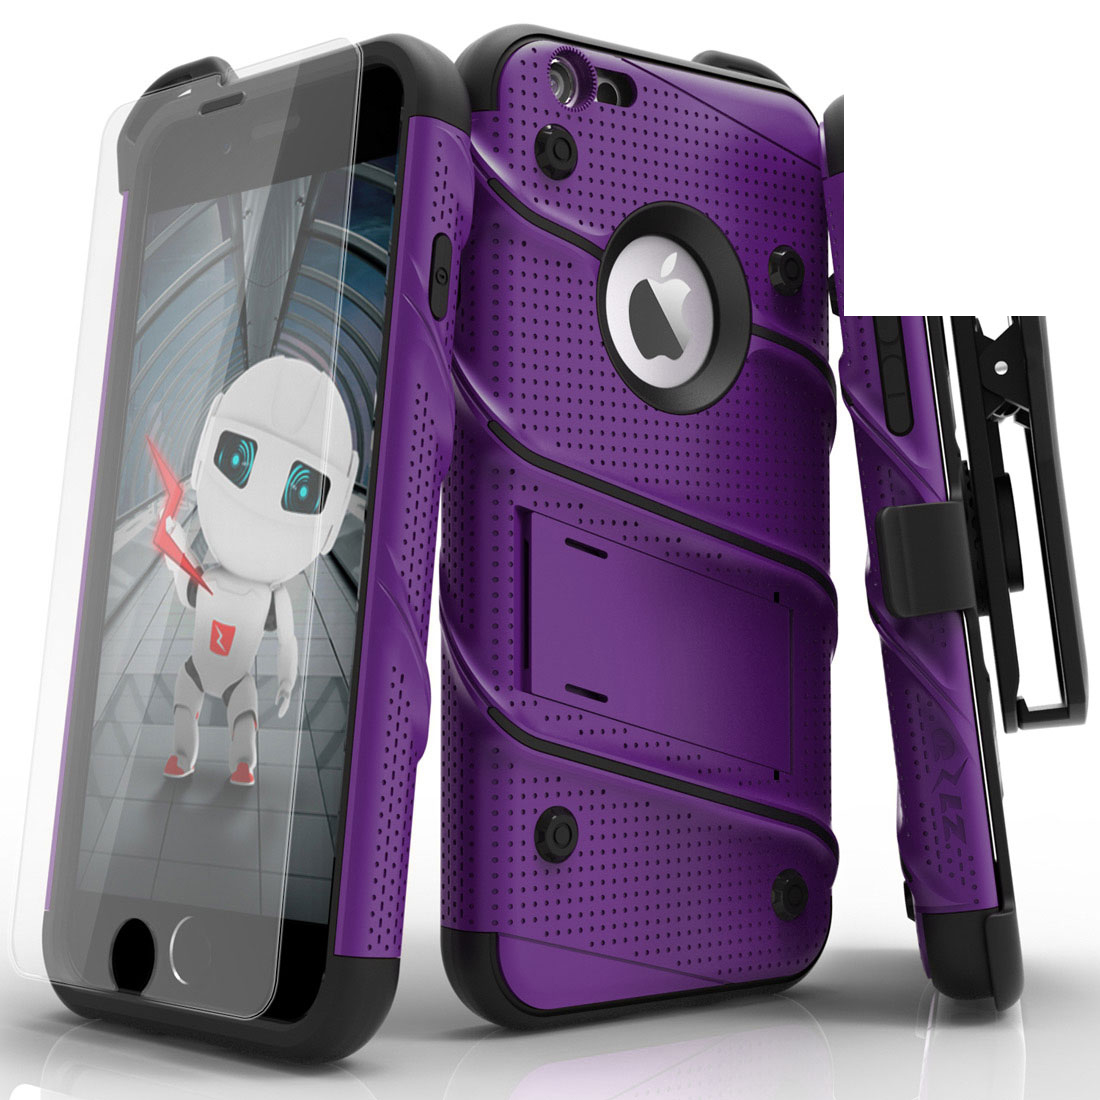 Apple iPhone 6S/6 Plus (5.5 inch) Case - [bolt] Heavy Duty Cover w/ Kickstand, Holster, Tempered Glass Screen Protector & Lanyard [Purple]